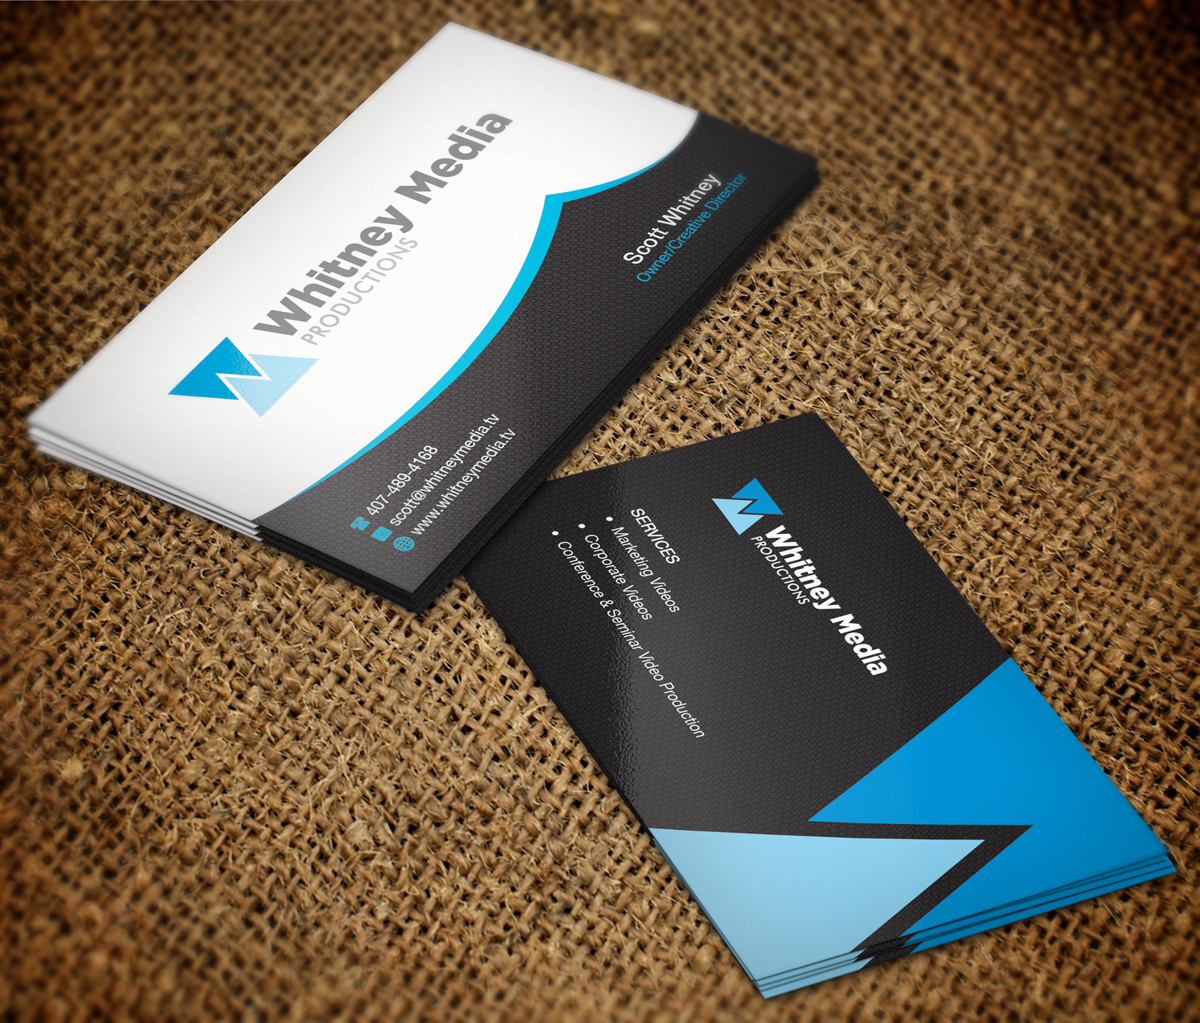 Modern professional marketing business card design for whitney business card design by nuhanenterprise for whitney media productions design 4397230 reheart Images